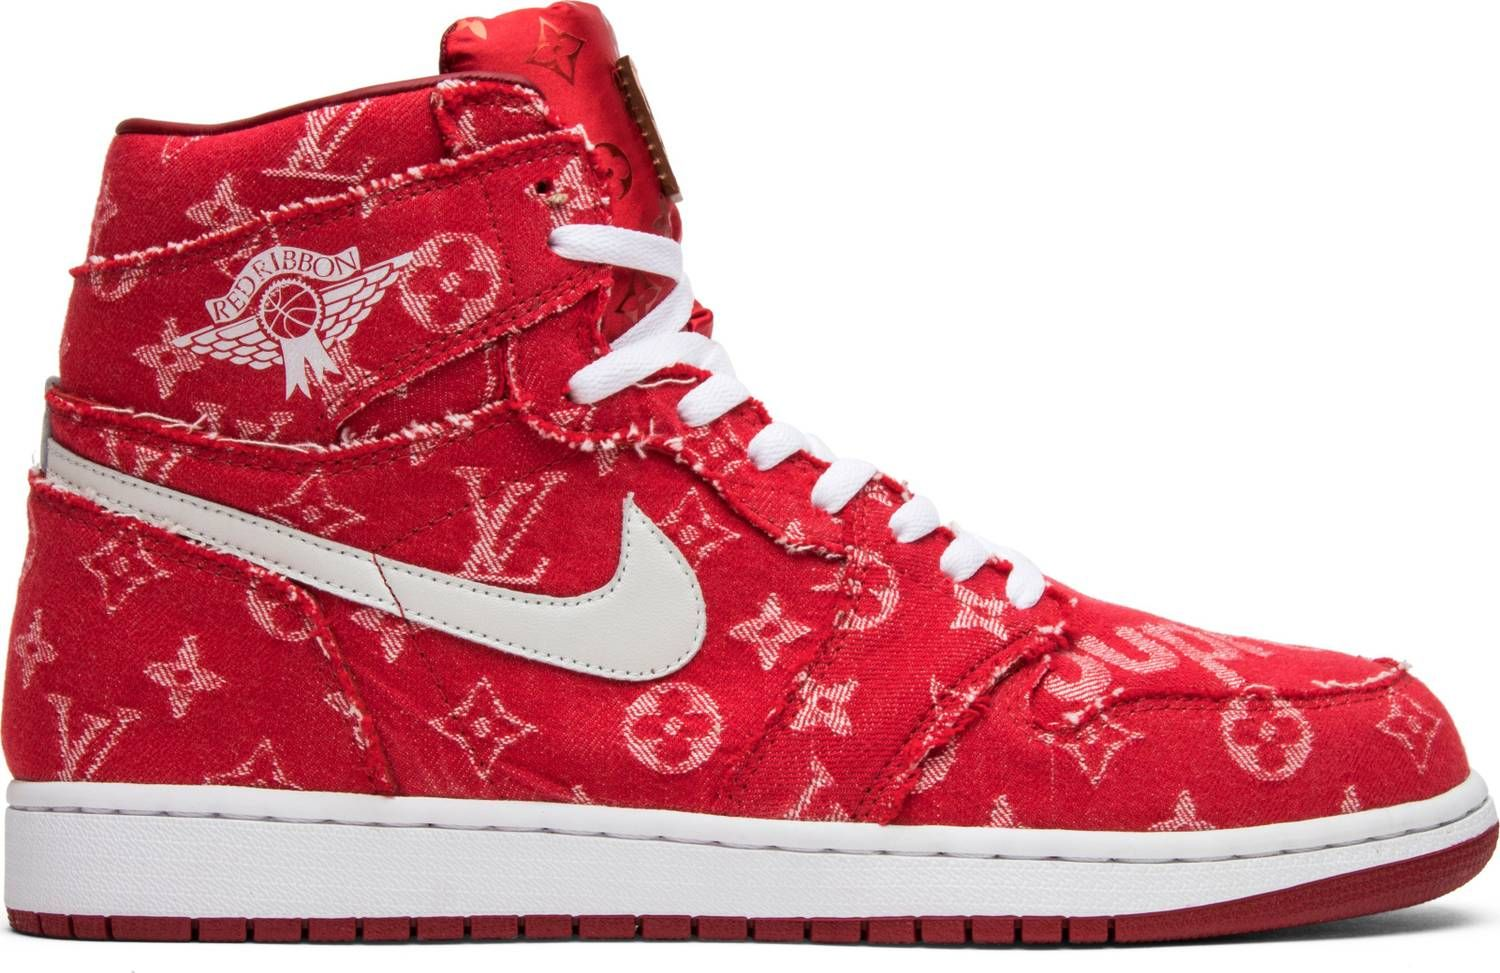 best service b1c20 95502 Air Jordan Supreme x Louis Vuitton x Red Ribbon Recon x Air Jordan 1 Retro  High